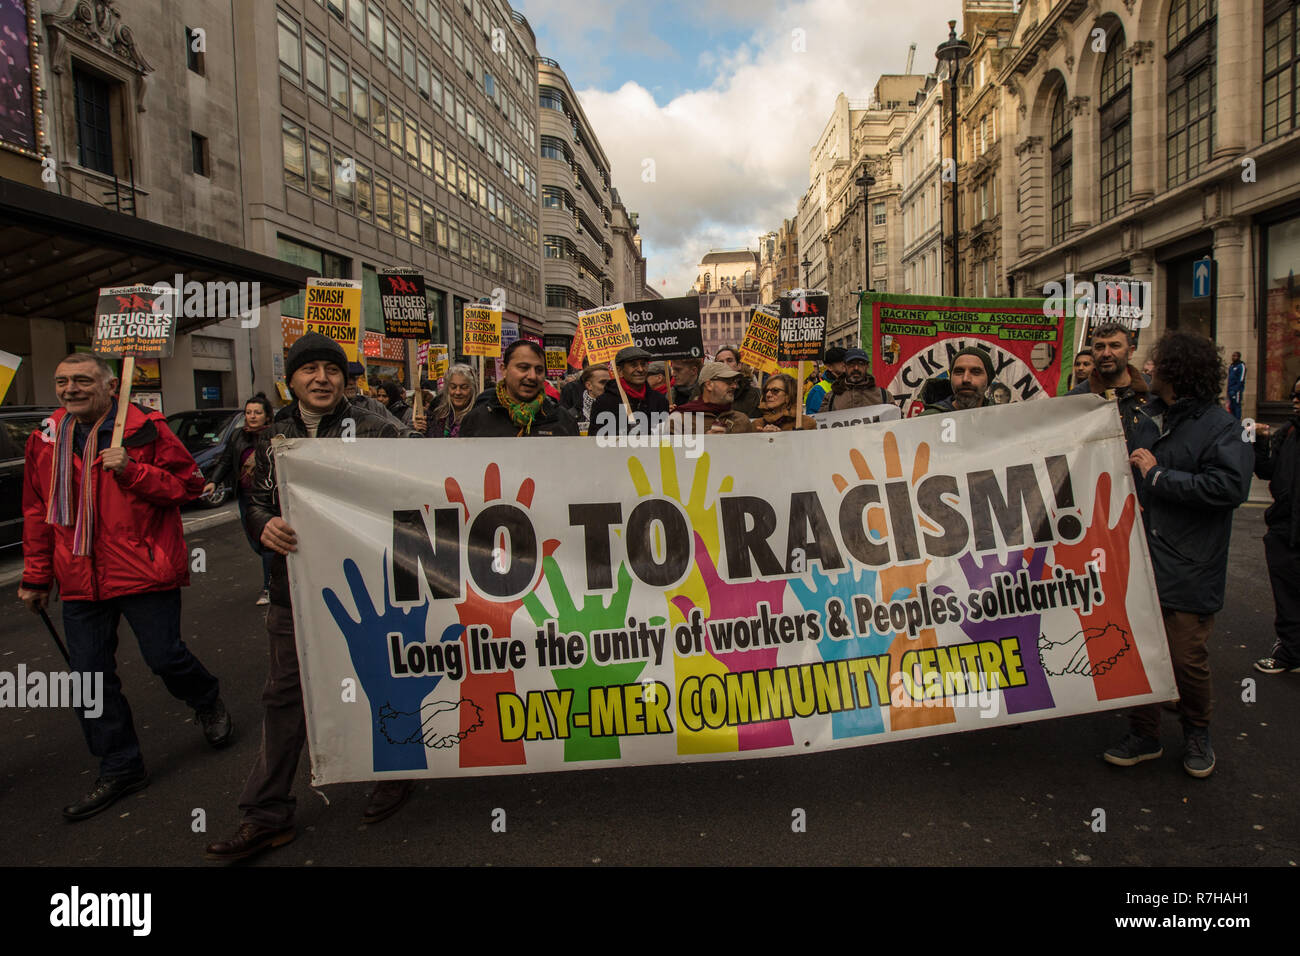 London, UK. 9th Dec, 2018. Thousands marched in a anti-racist counter demonstration against the far right organised 'Brexit betrayal' march in central London and heavily outnumbered the racist UKIP led march. Credit: David Rowe/Alamy Live News - Stock Image